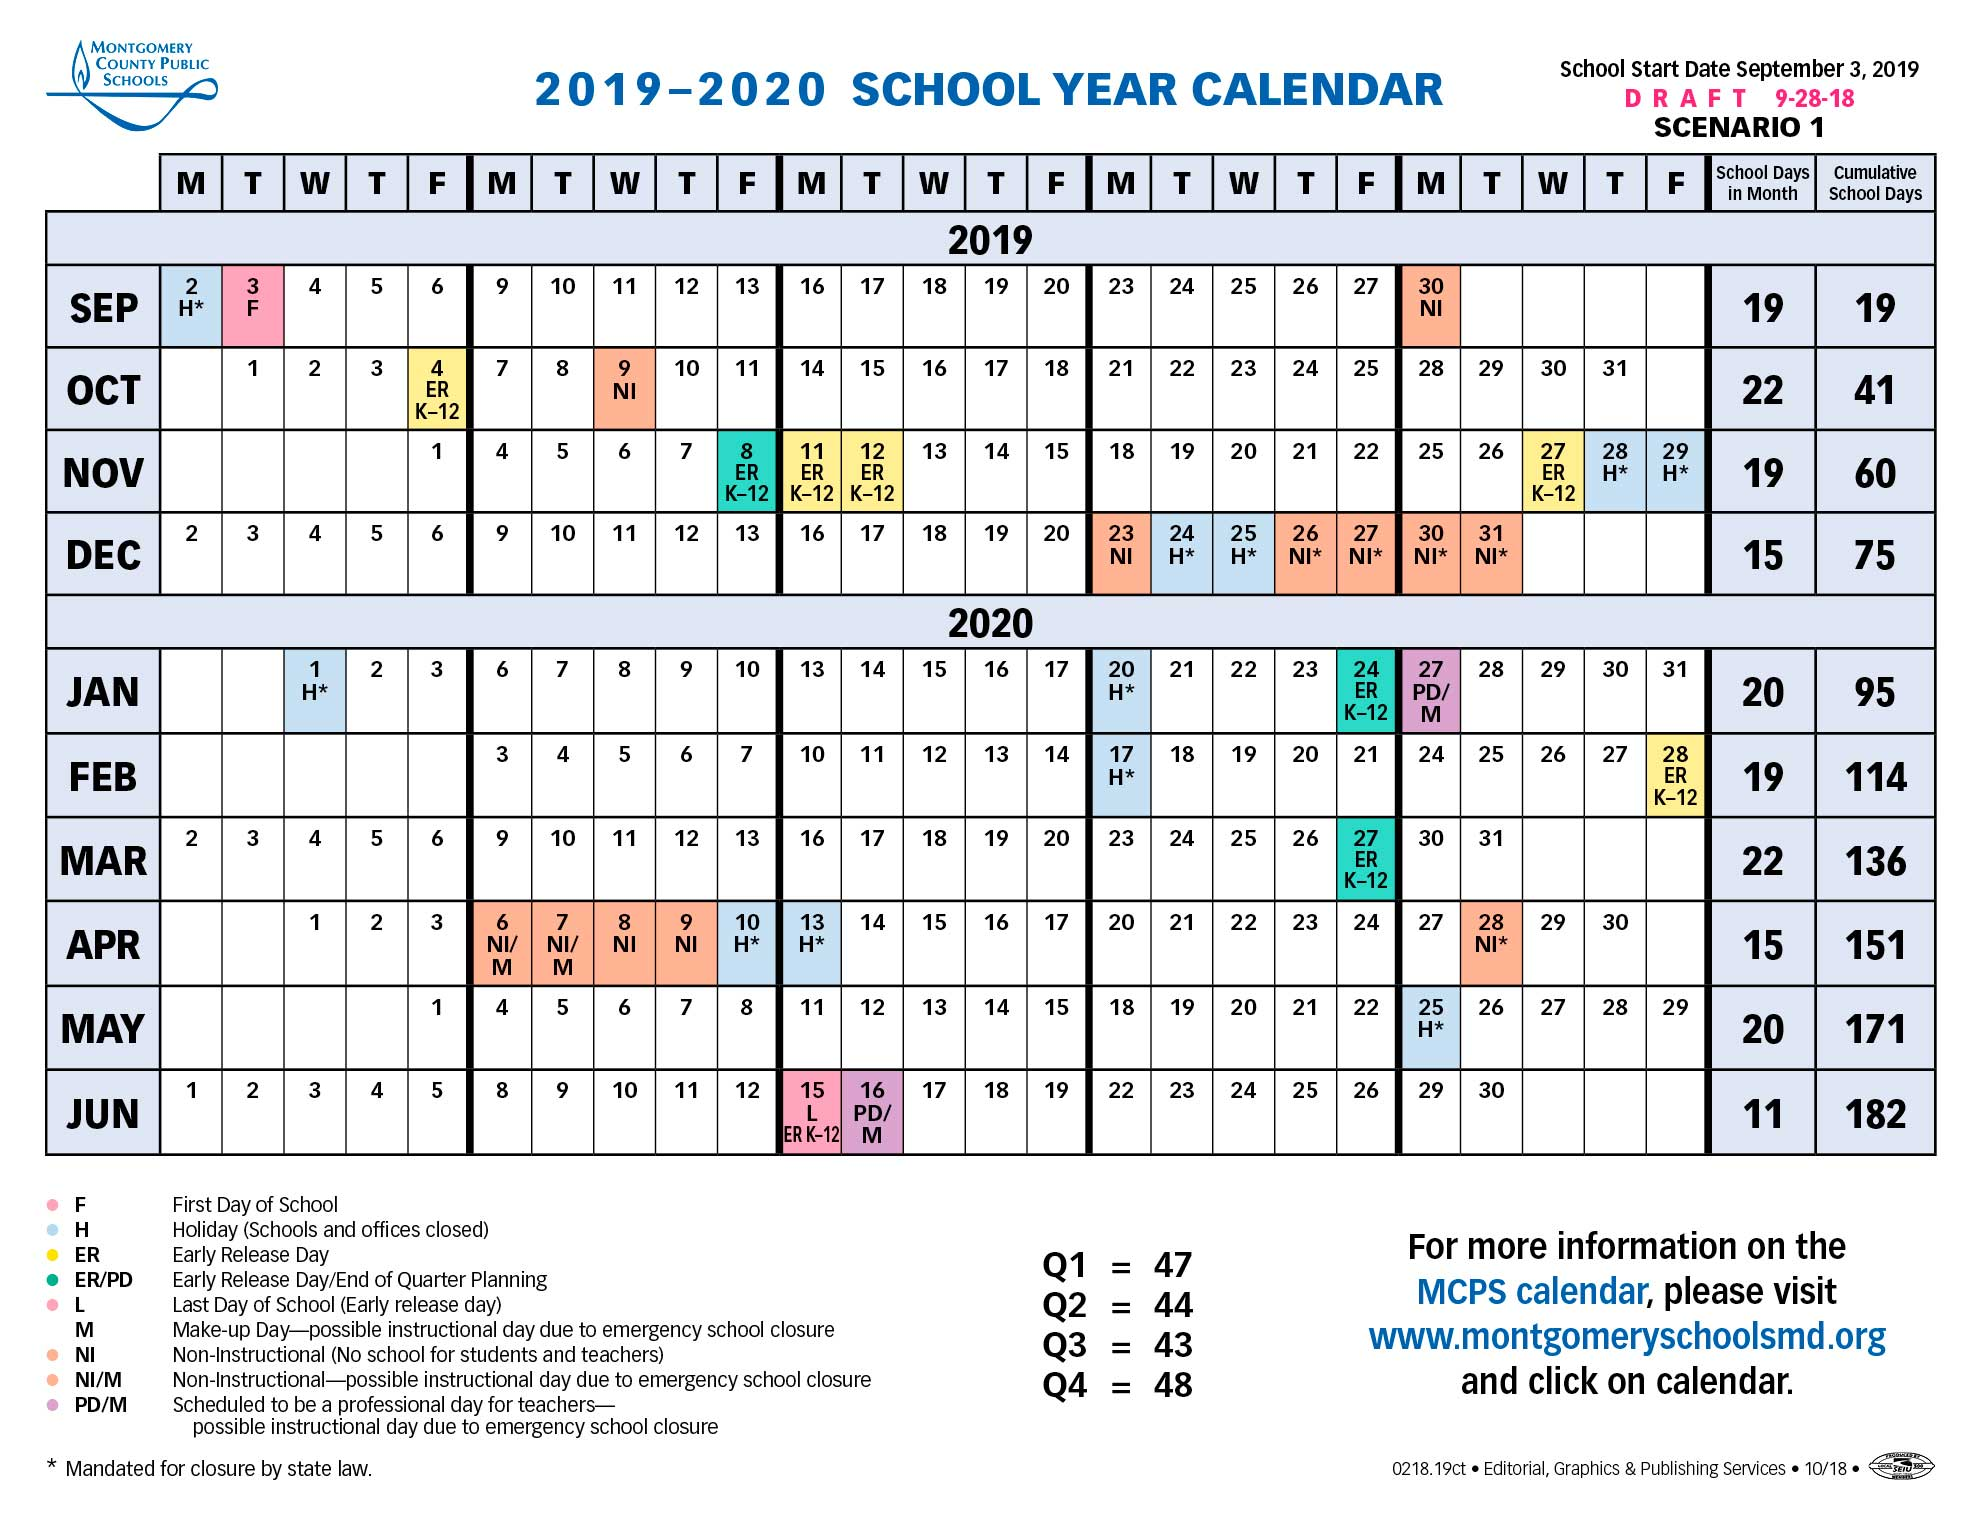 2019 Spring Calendar School Board Approves Longer Spring Break for 2019 2020 Calendar